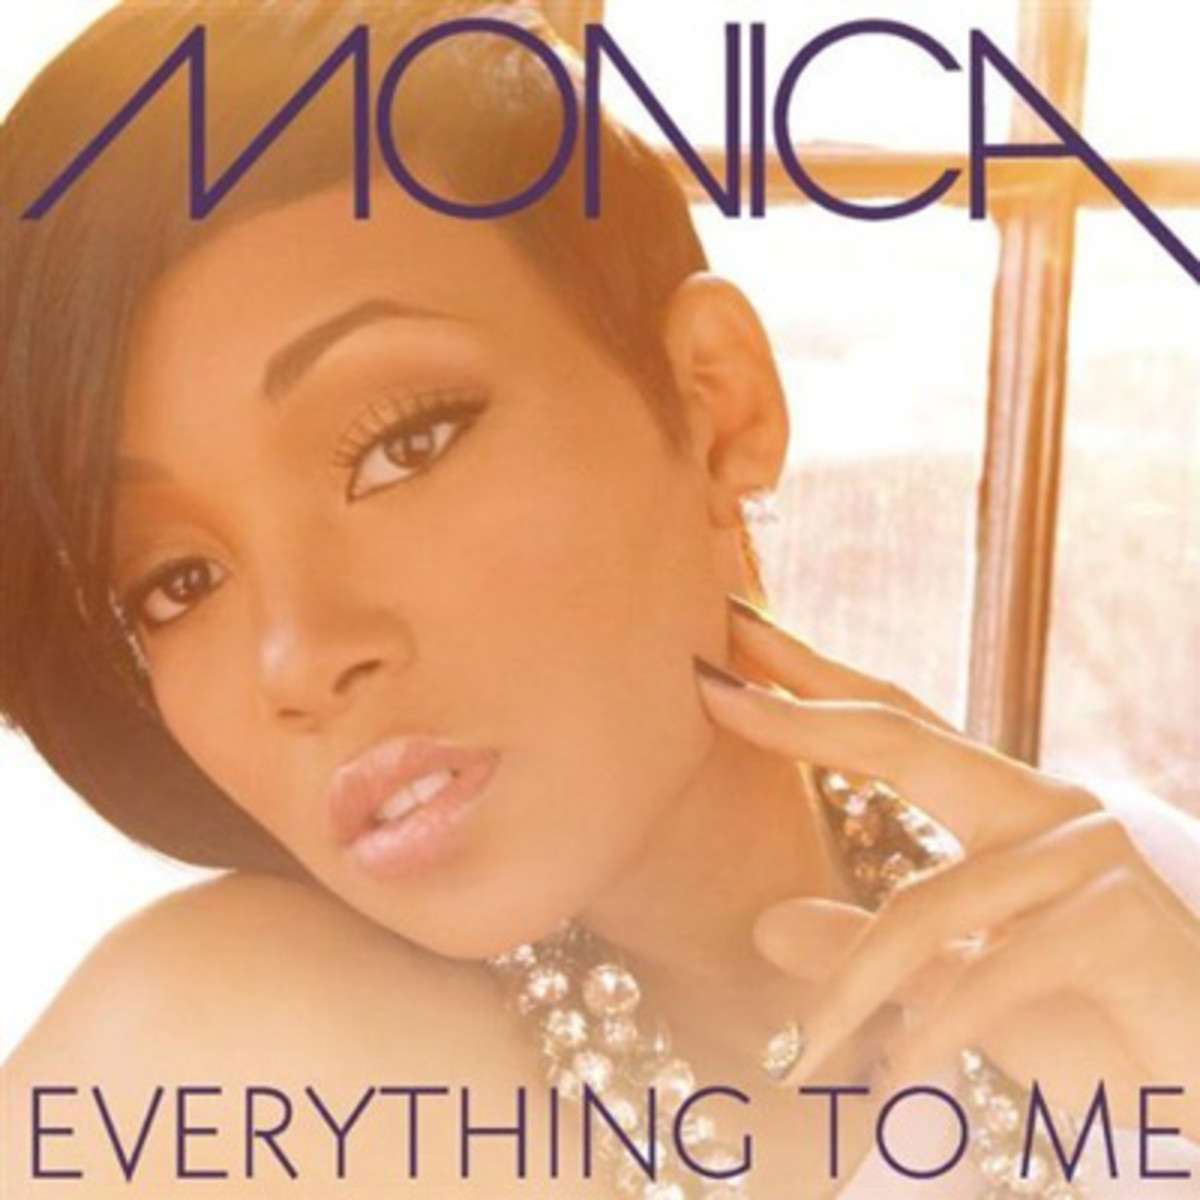 monica-everythingtome.jpg